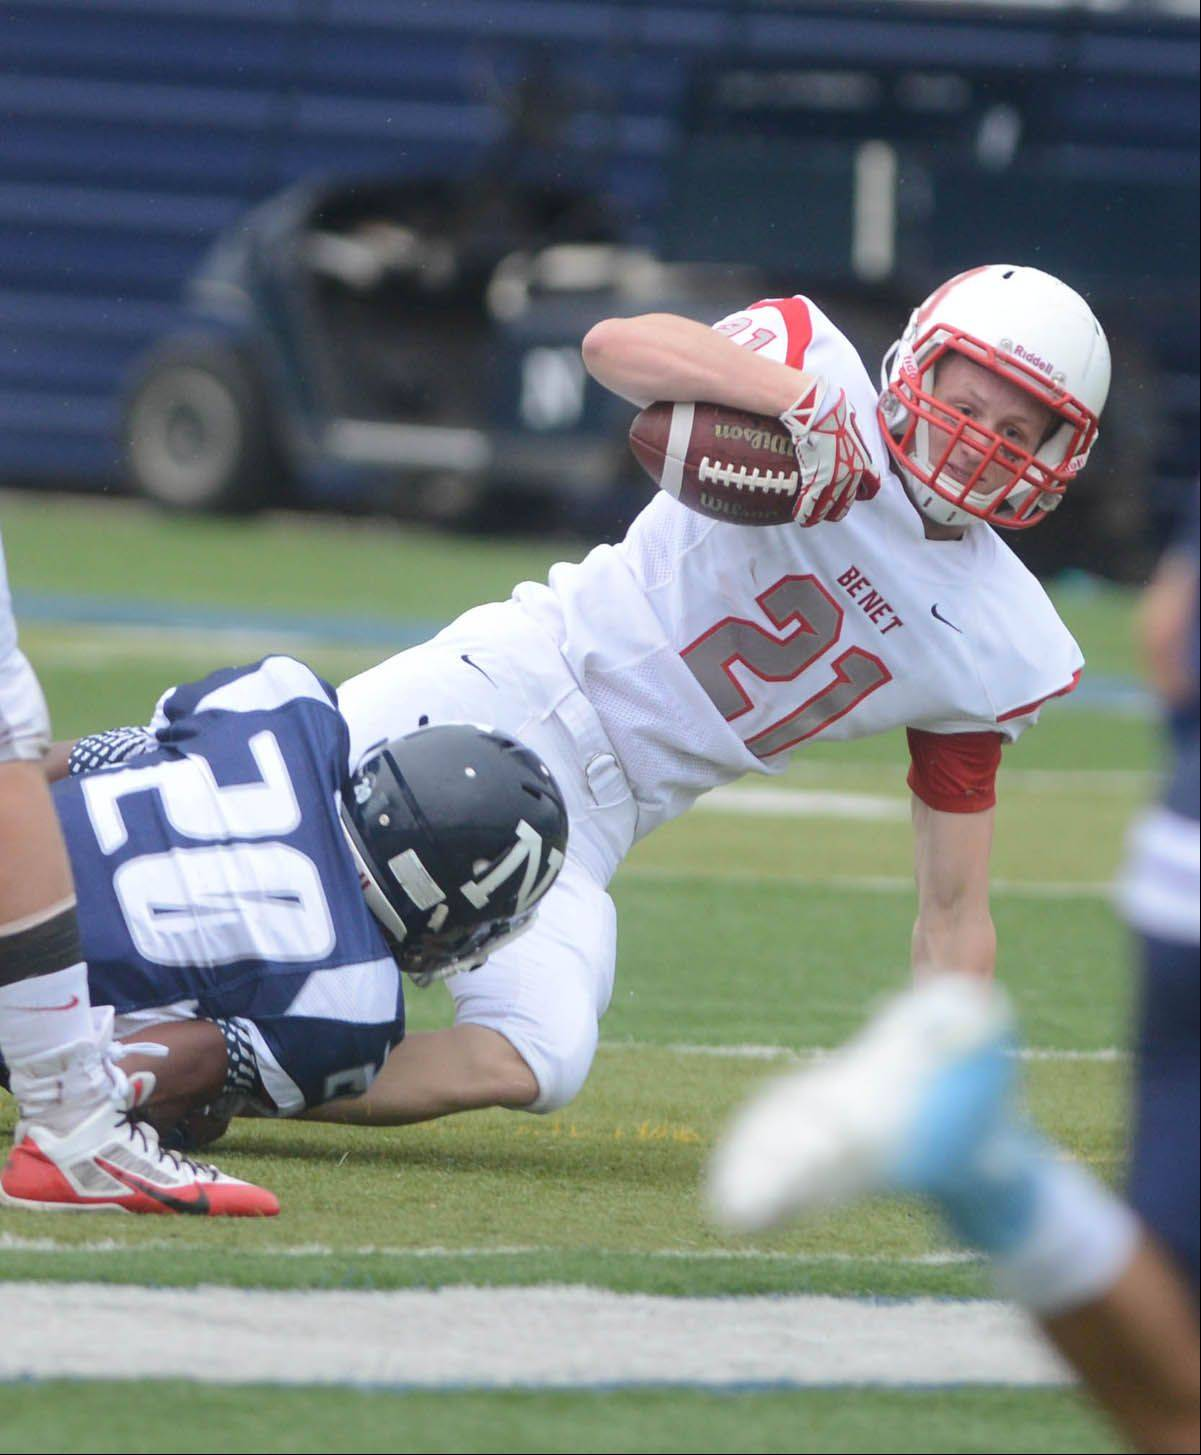 Ryan Parks of Benet is pulled down during the Redwings' loss to Nazareth Saturday.